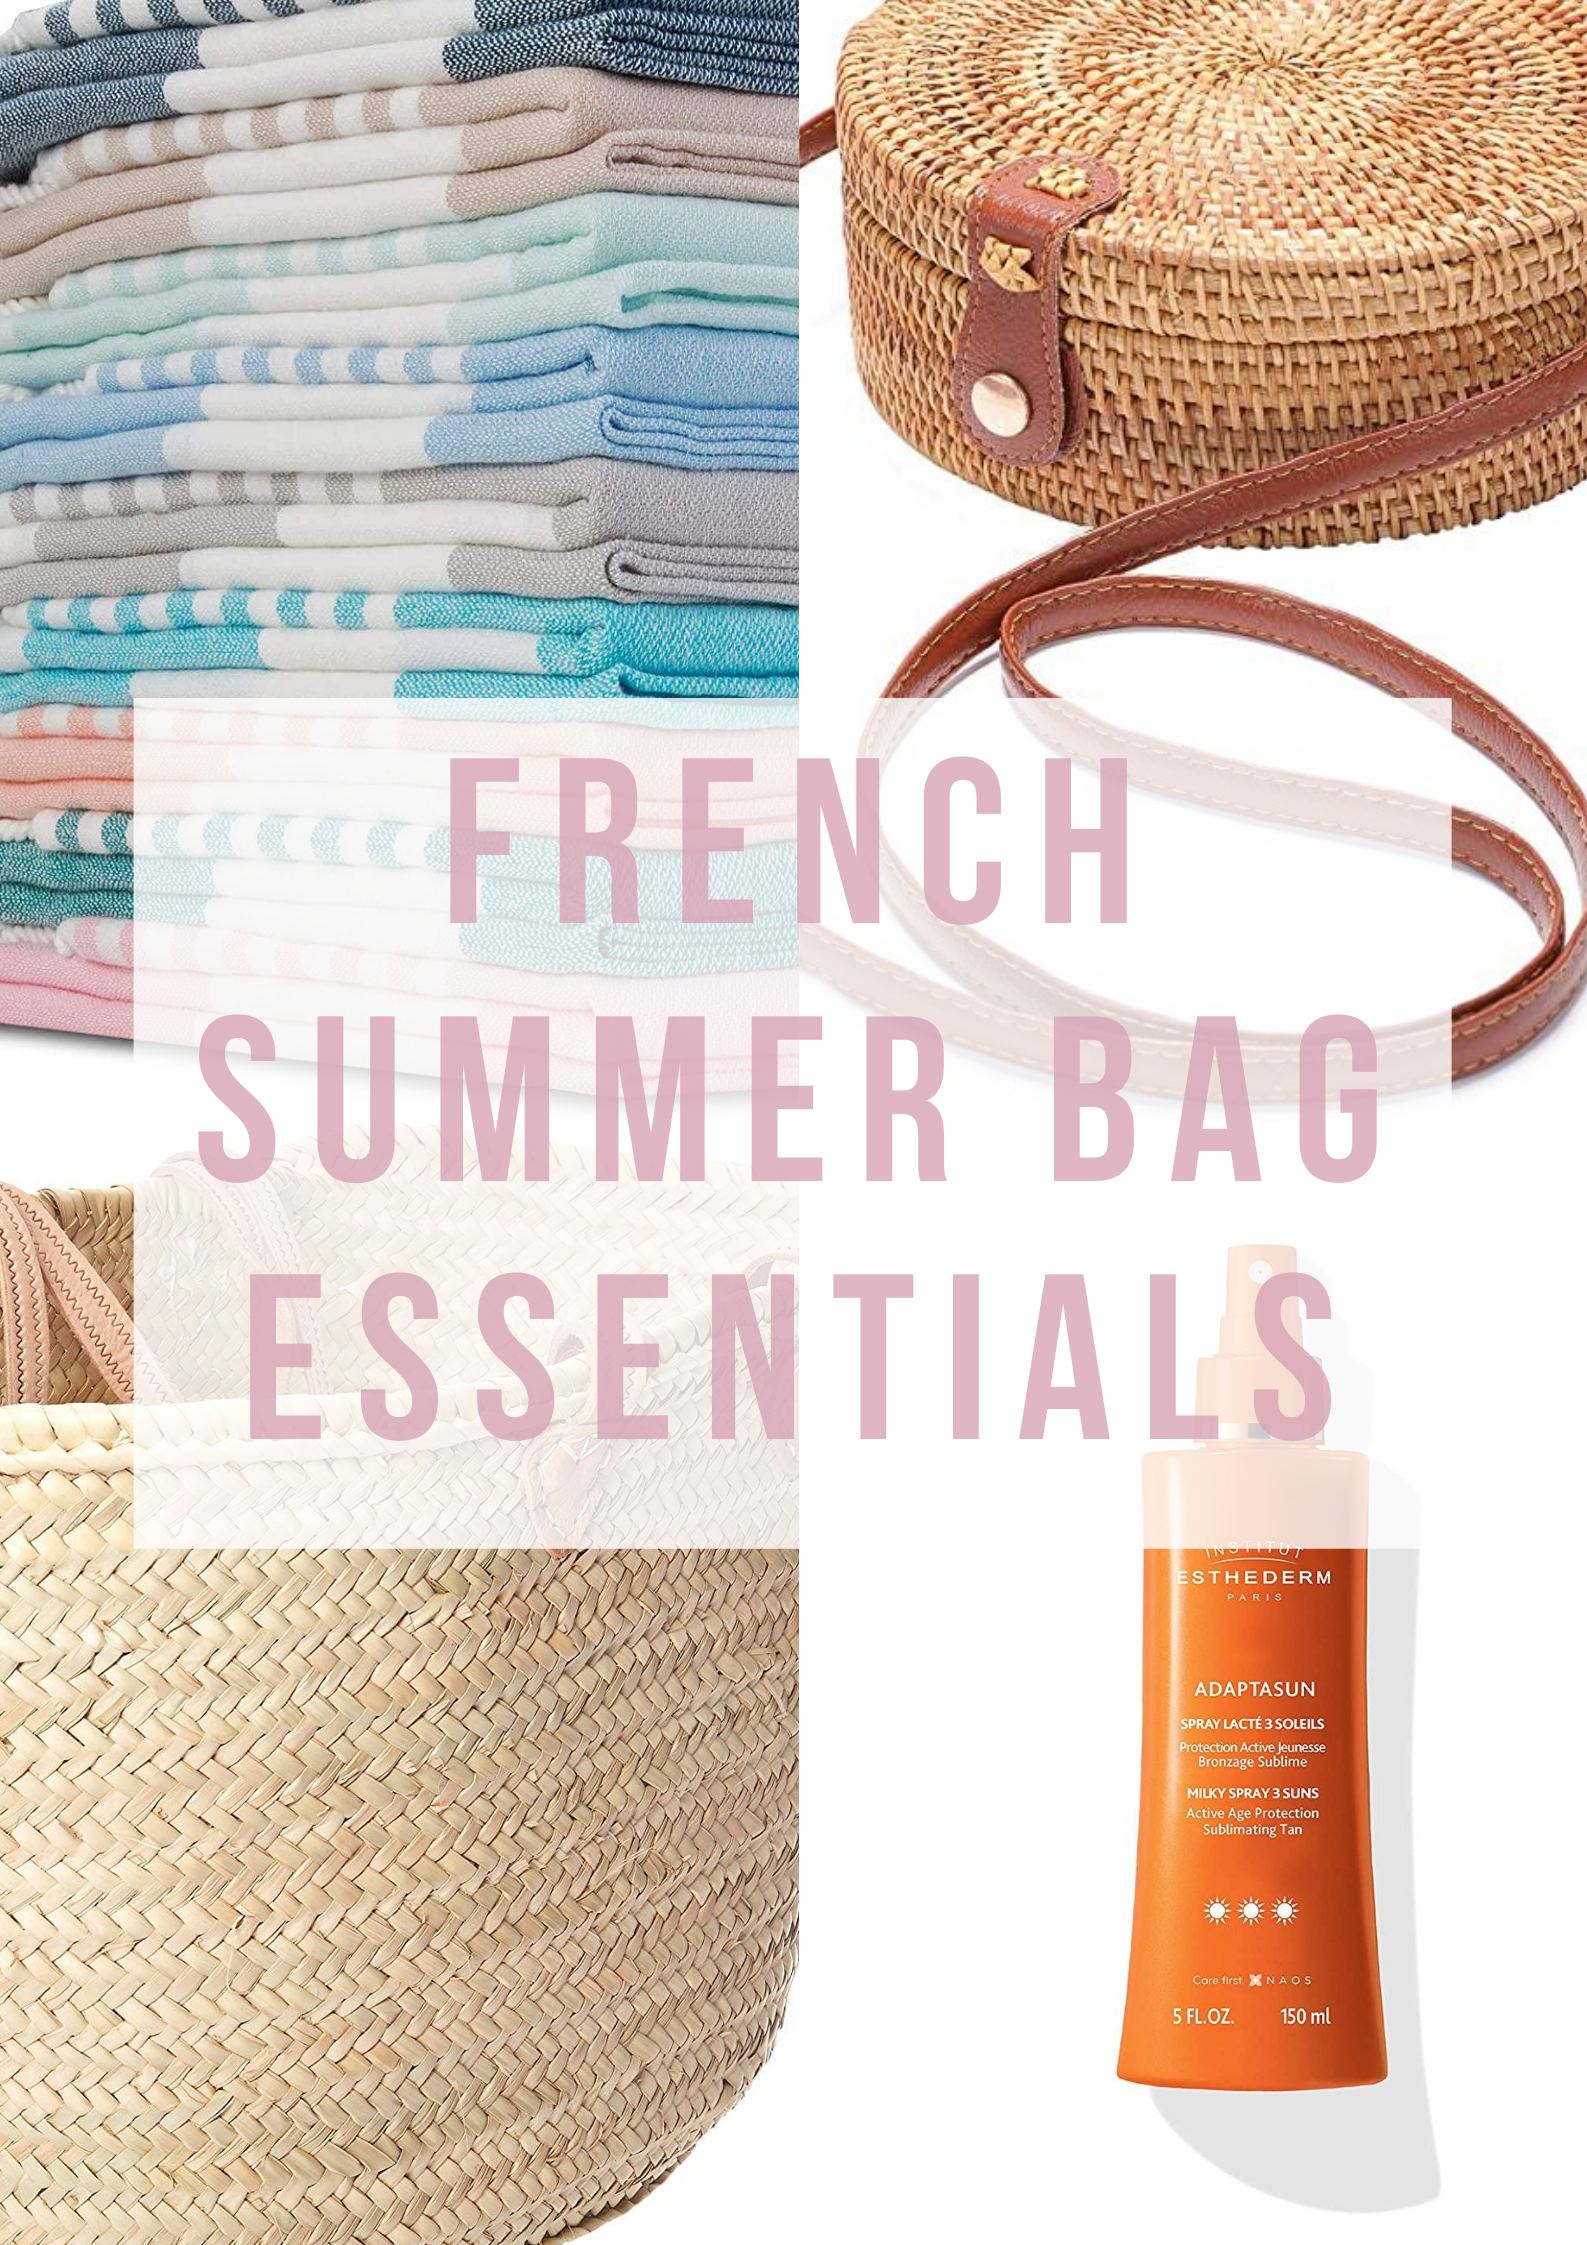 French summer bag essentials